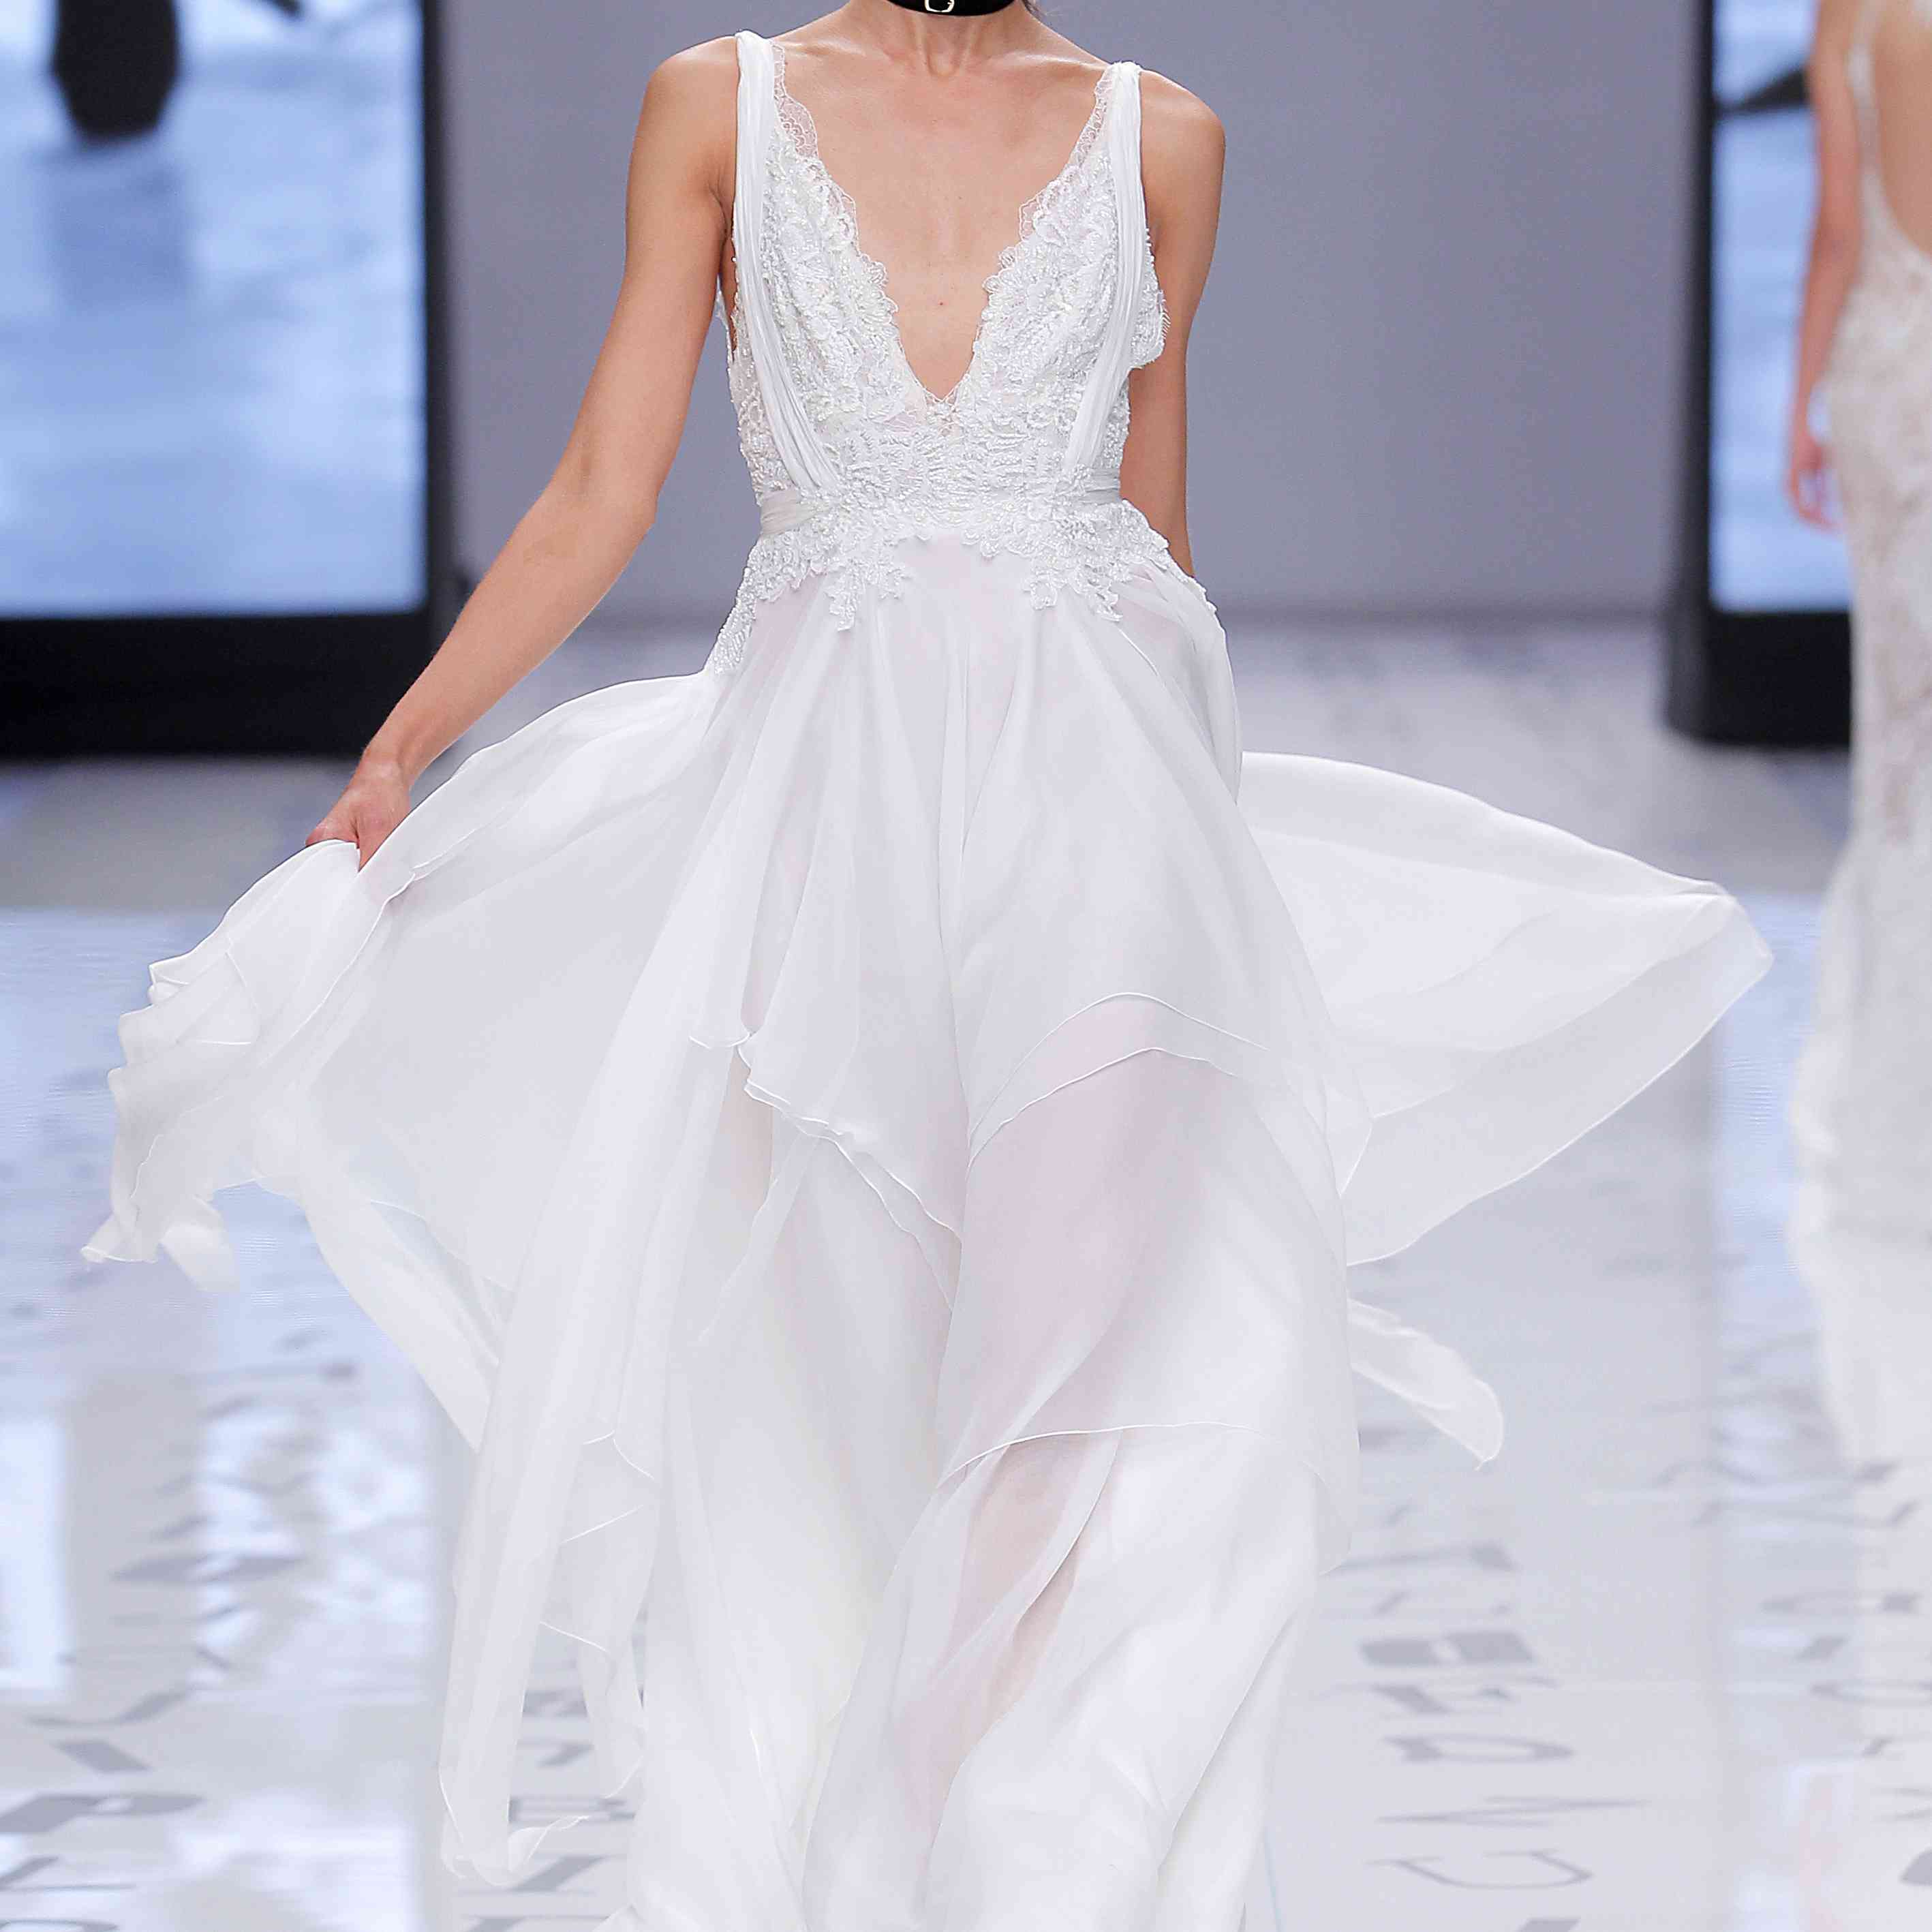 Model in V-neck organza gown with a tiered skirt and floral lace bodice